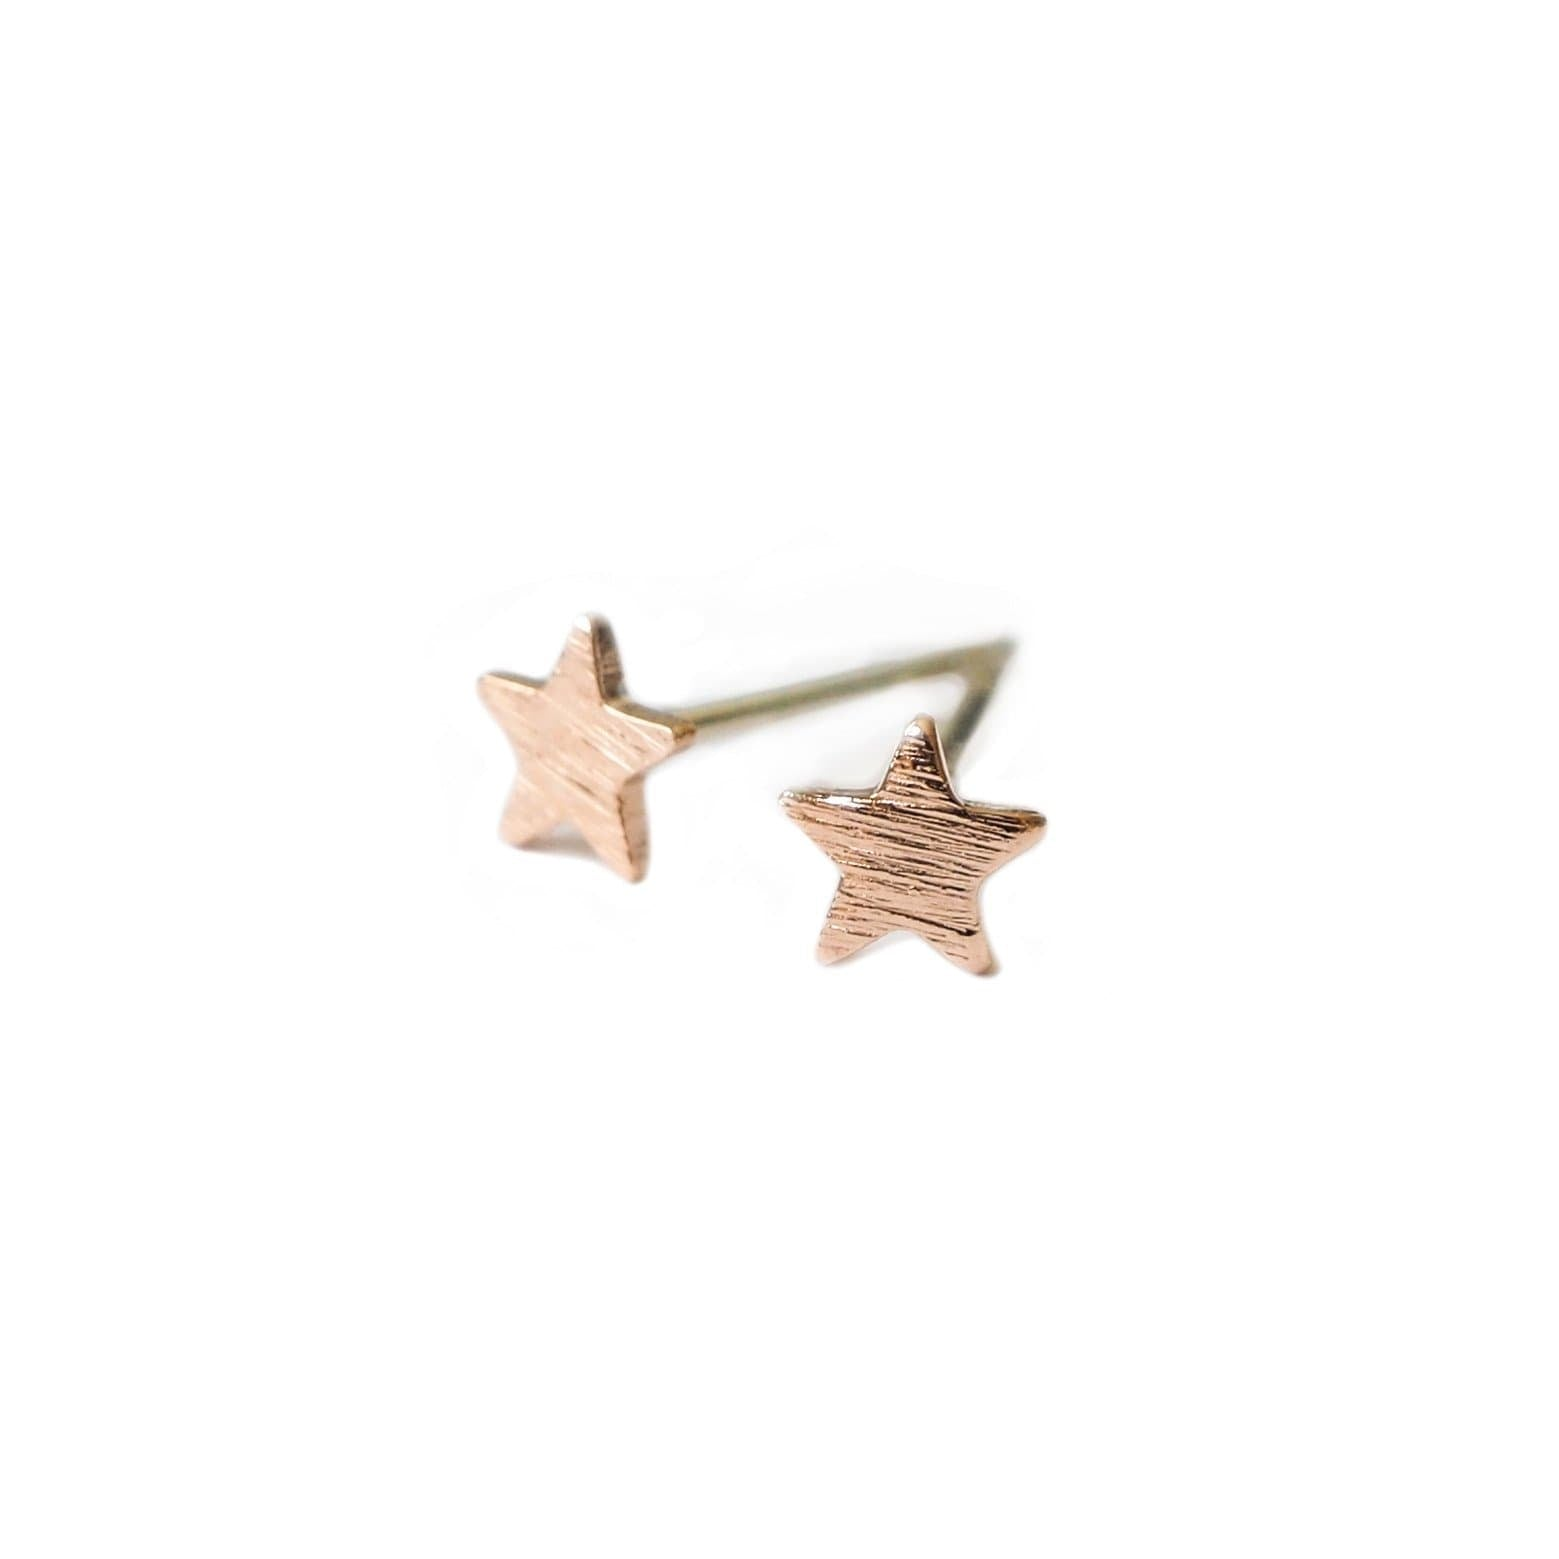 Star Stud Earrings, Earrings, adorn512, adorn512